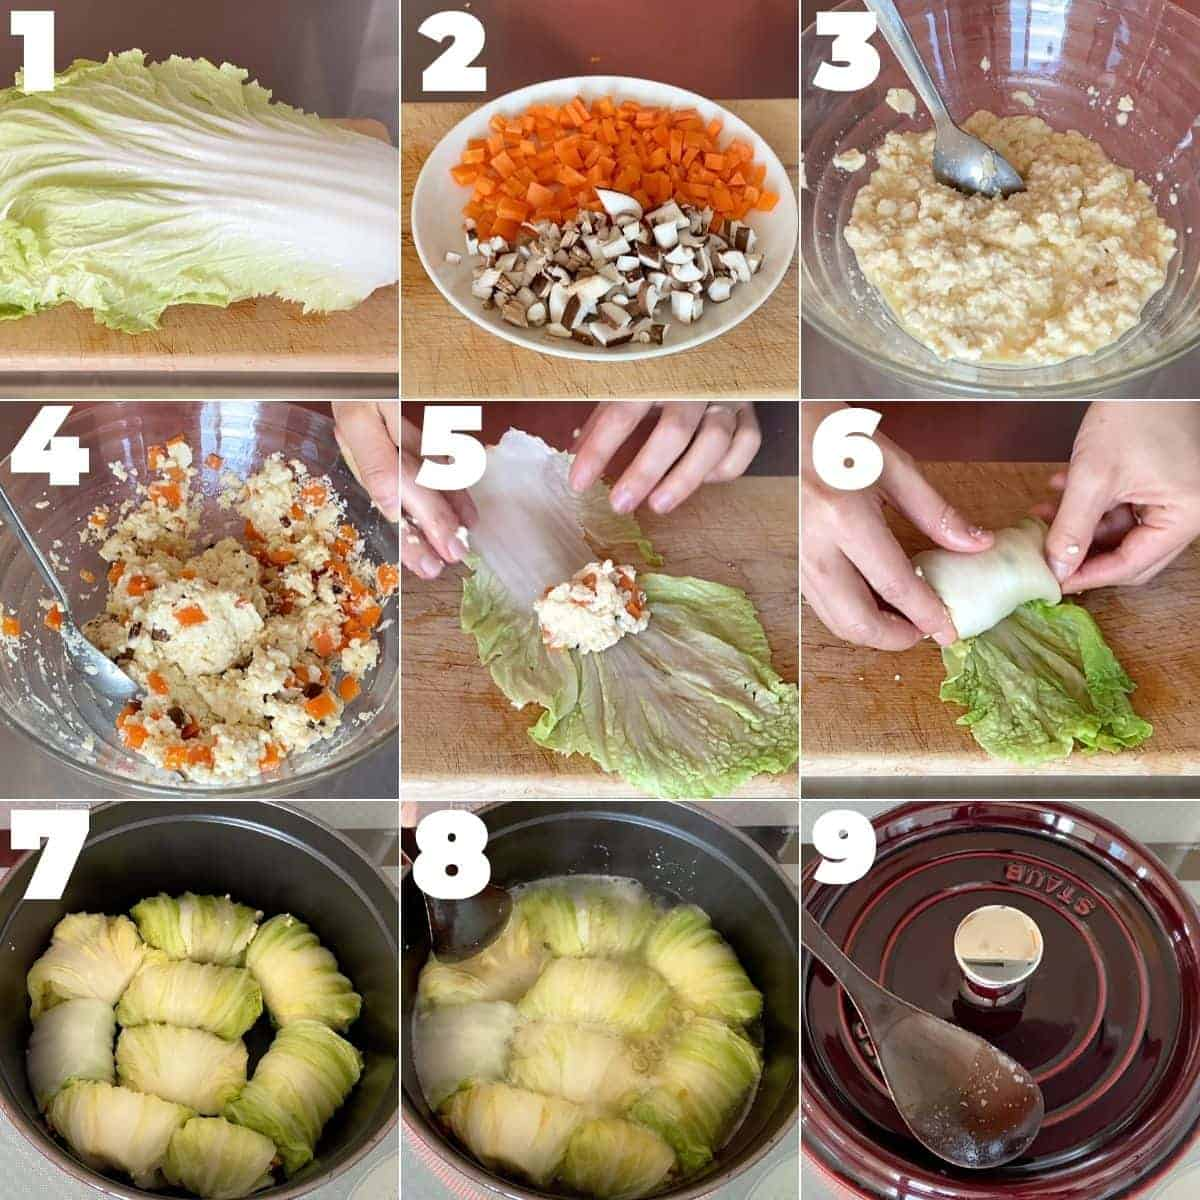 How to make napa cabbage rolls